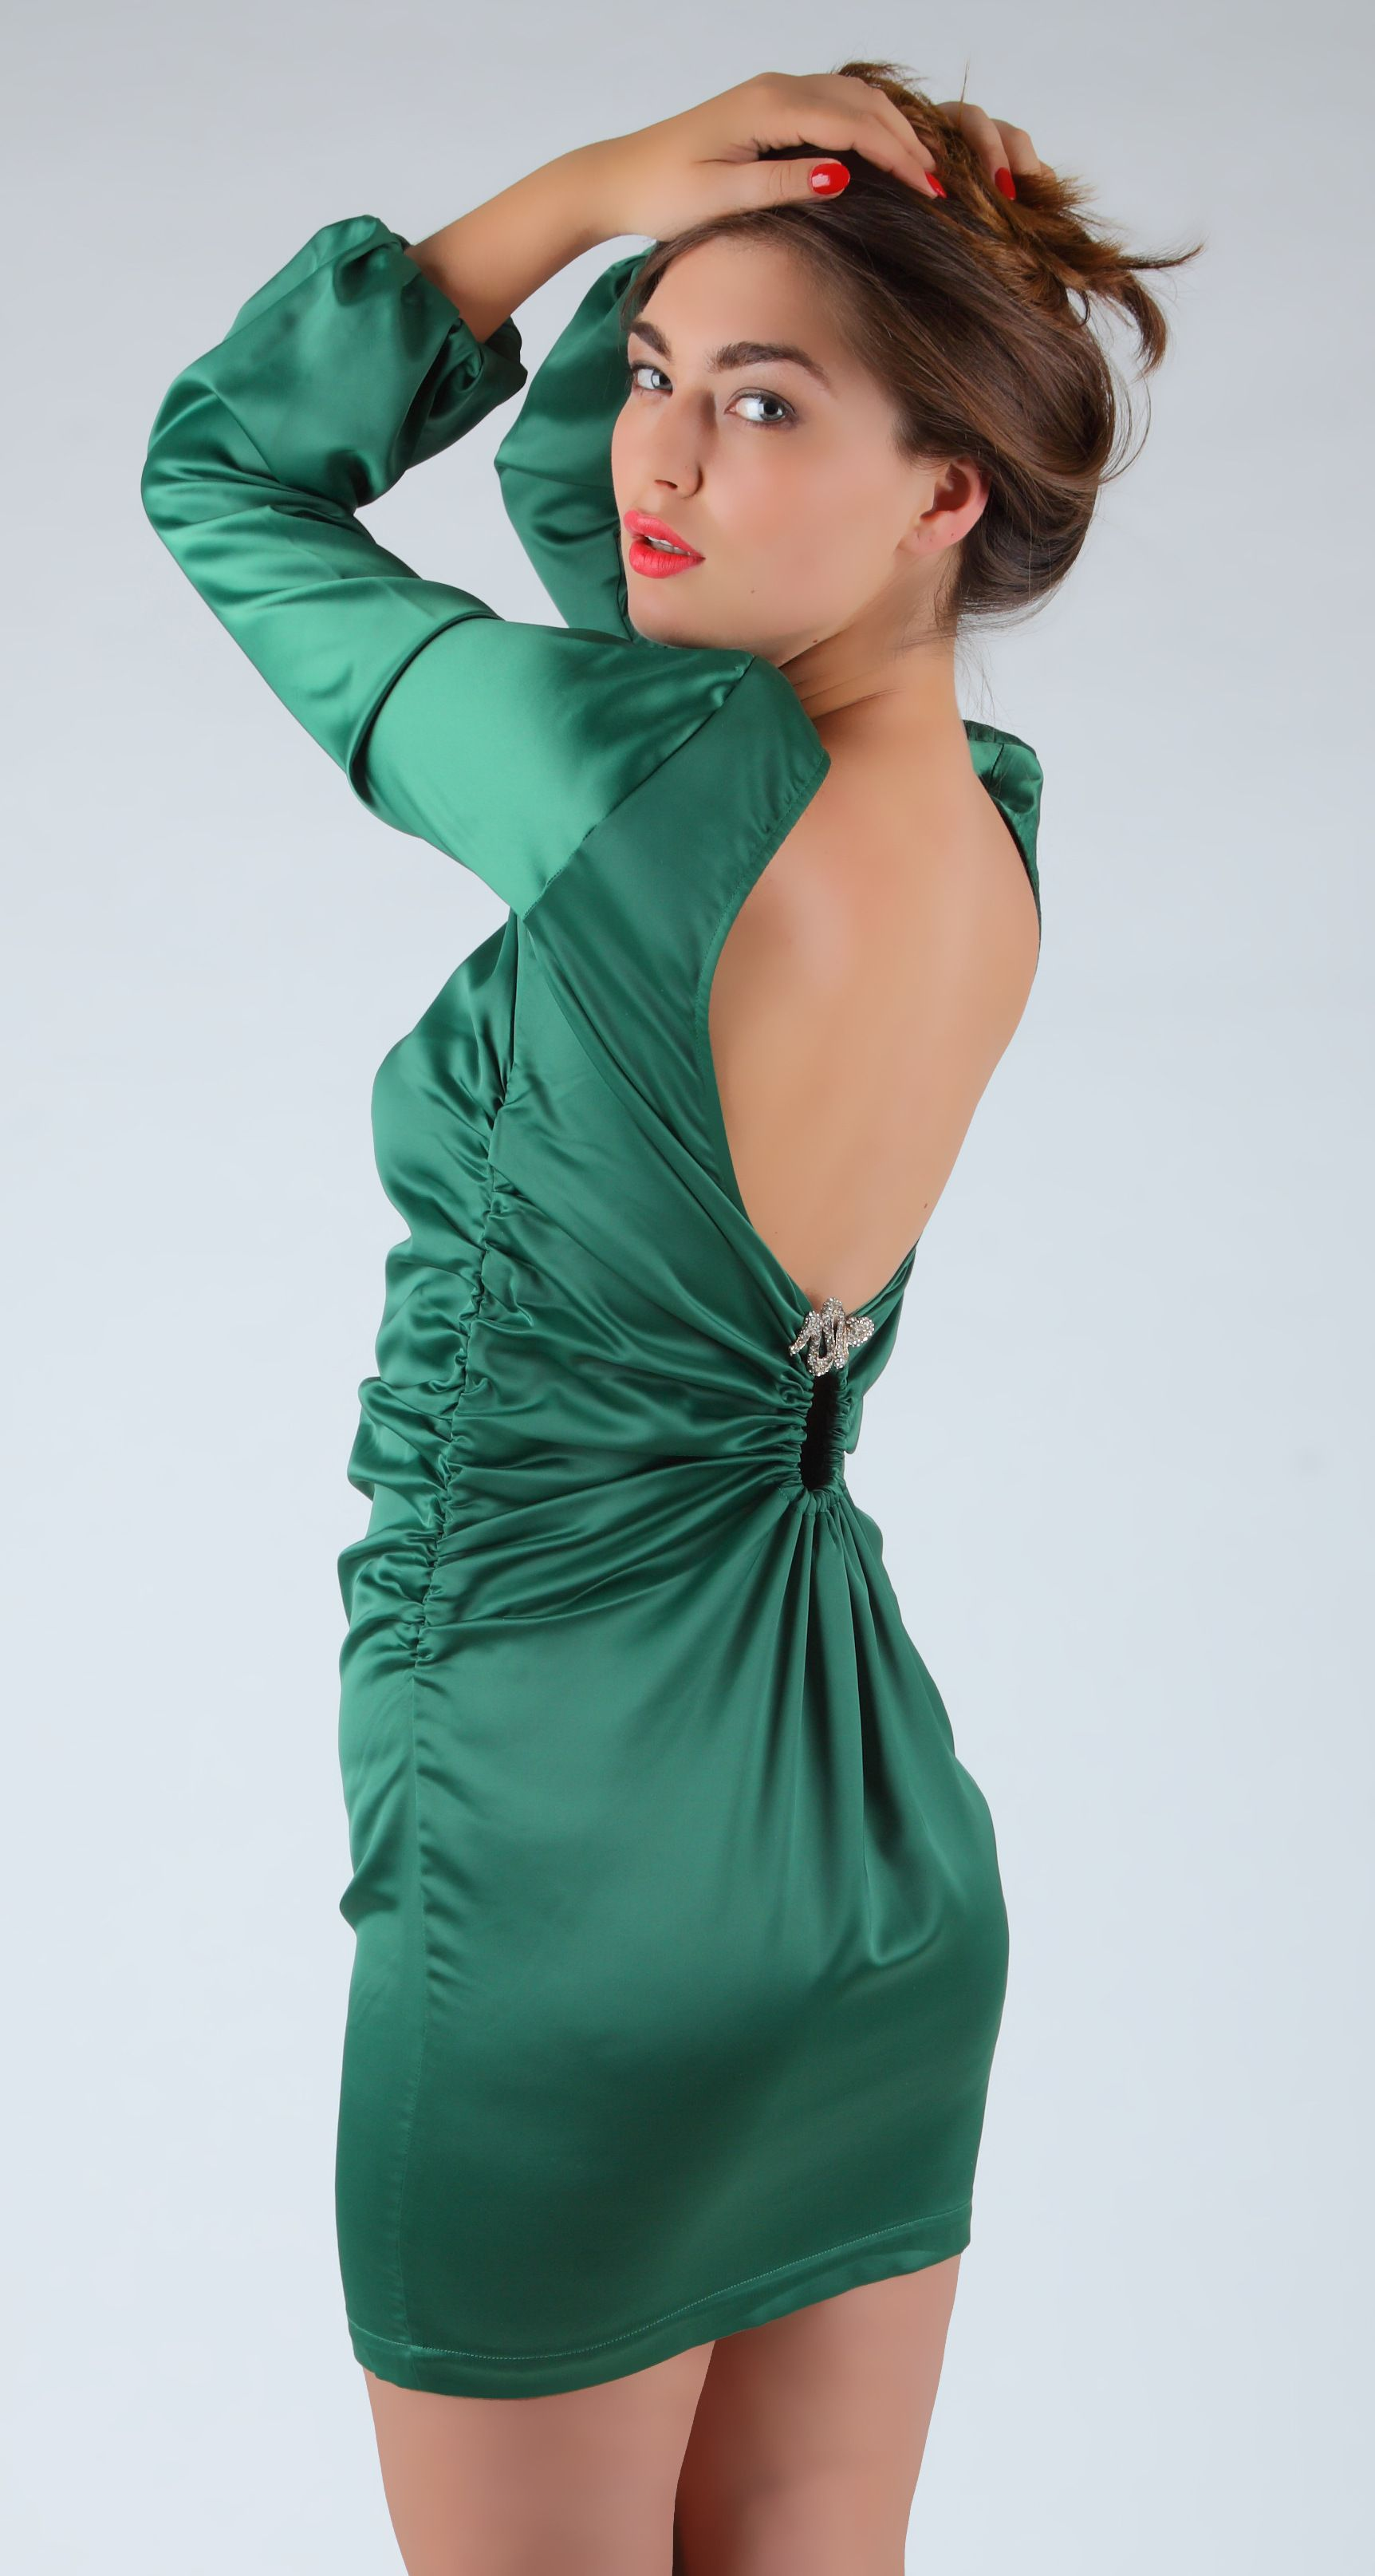 Chic Green Sexy Party Dress With Ruffles Free Shipping